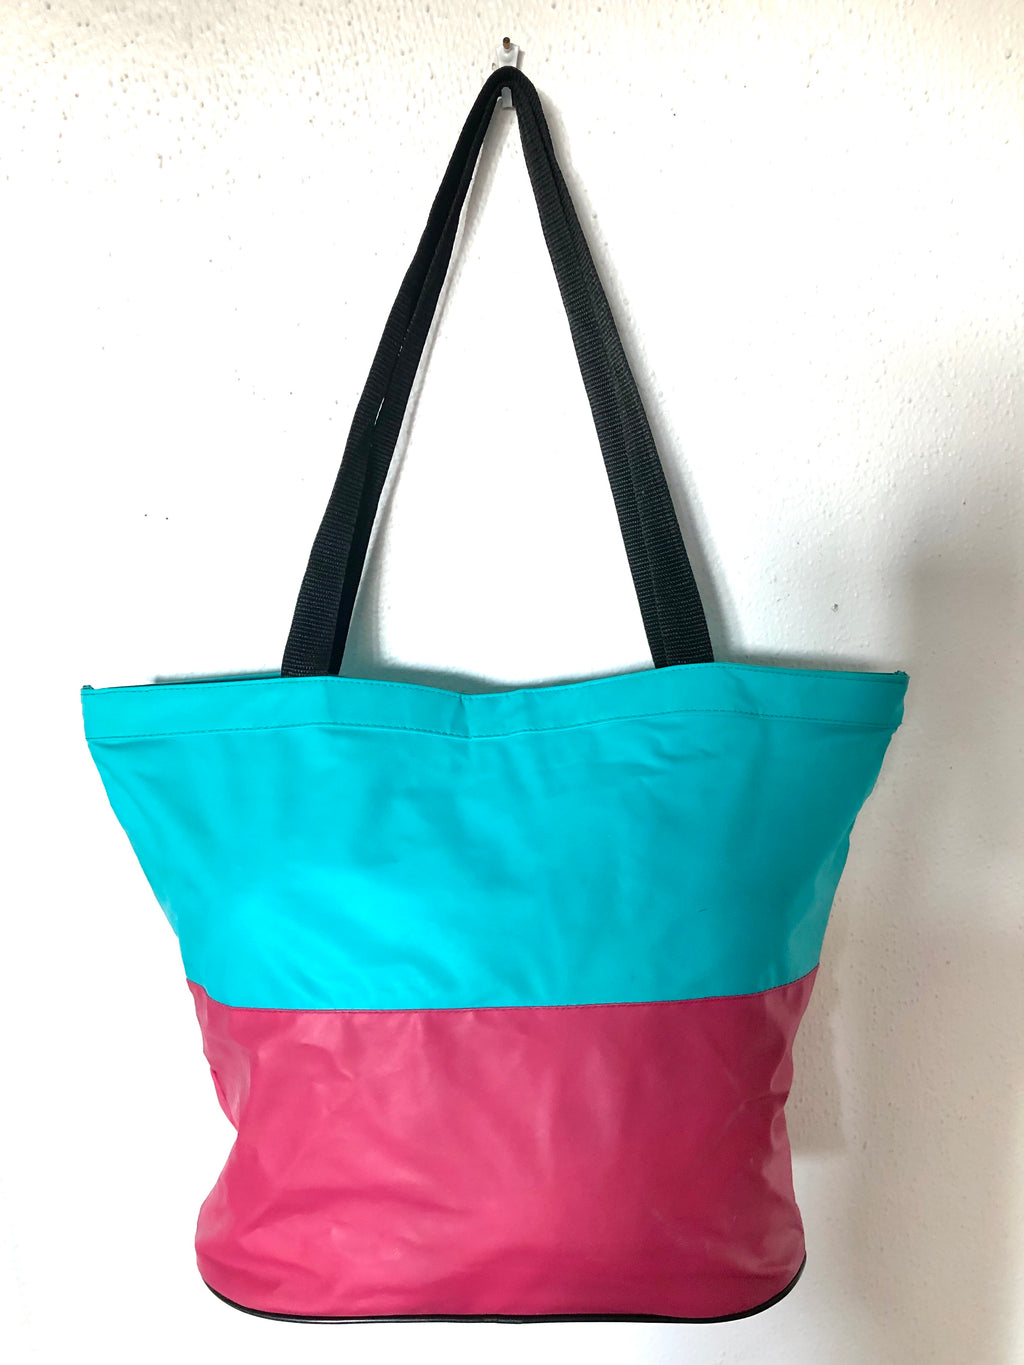 Vintage 1980s Clock Tote Bag - Pink, Yellow, Teal